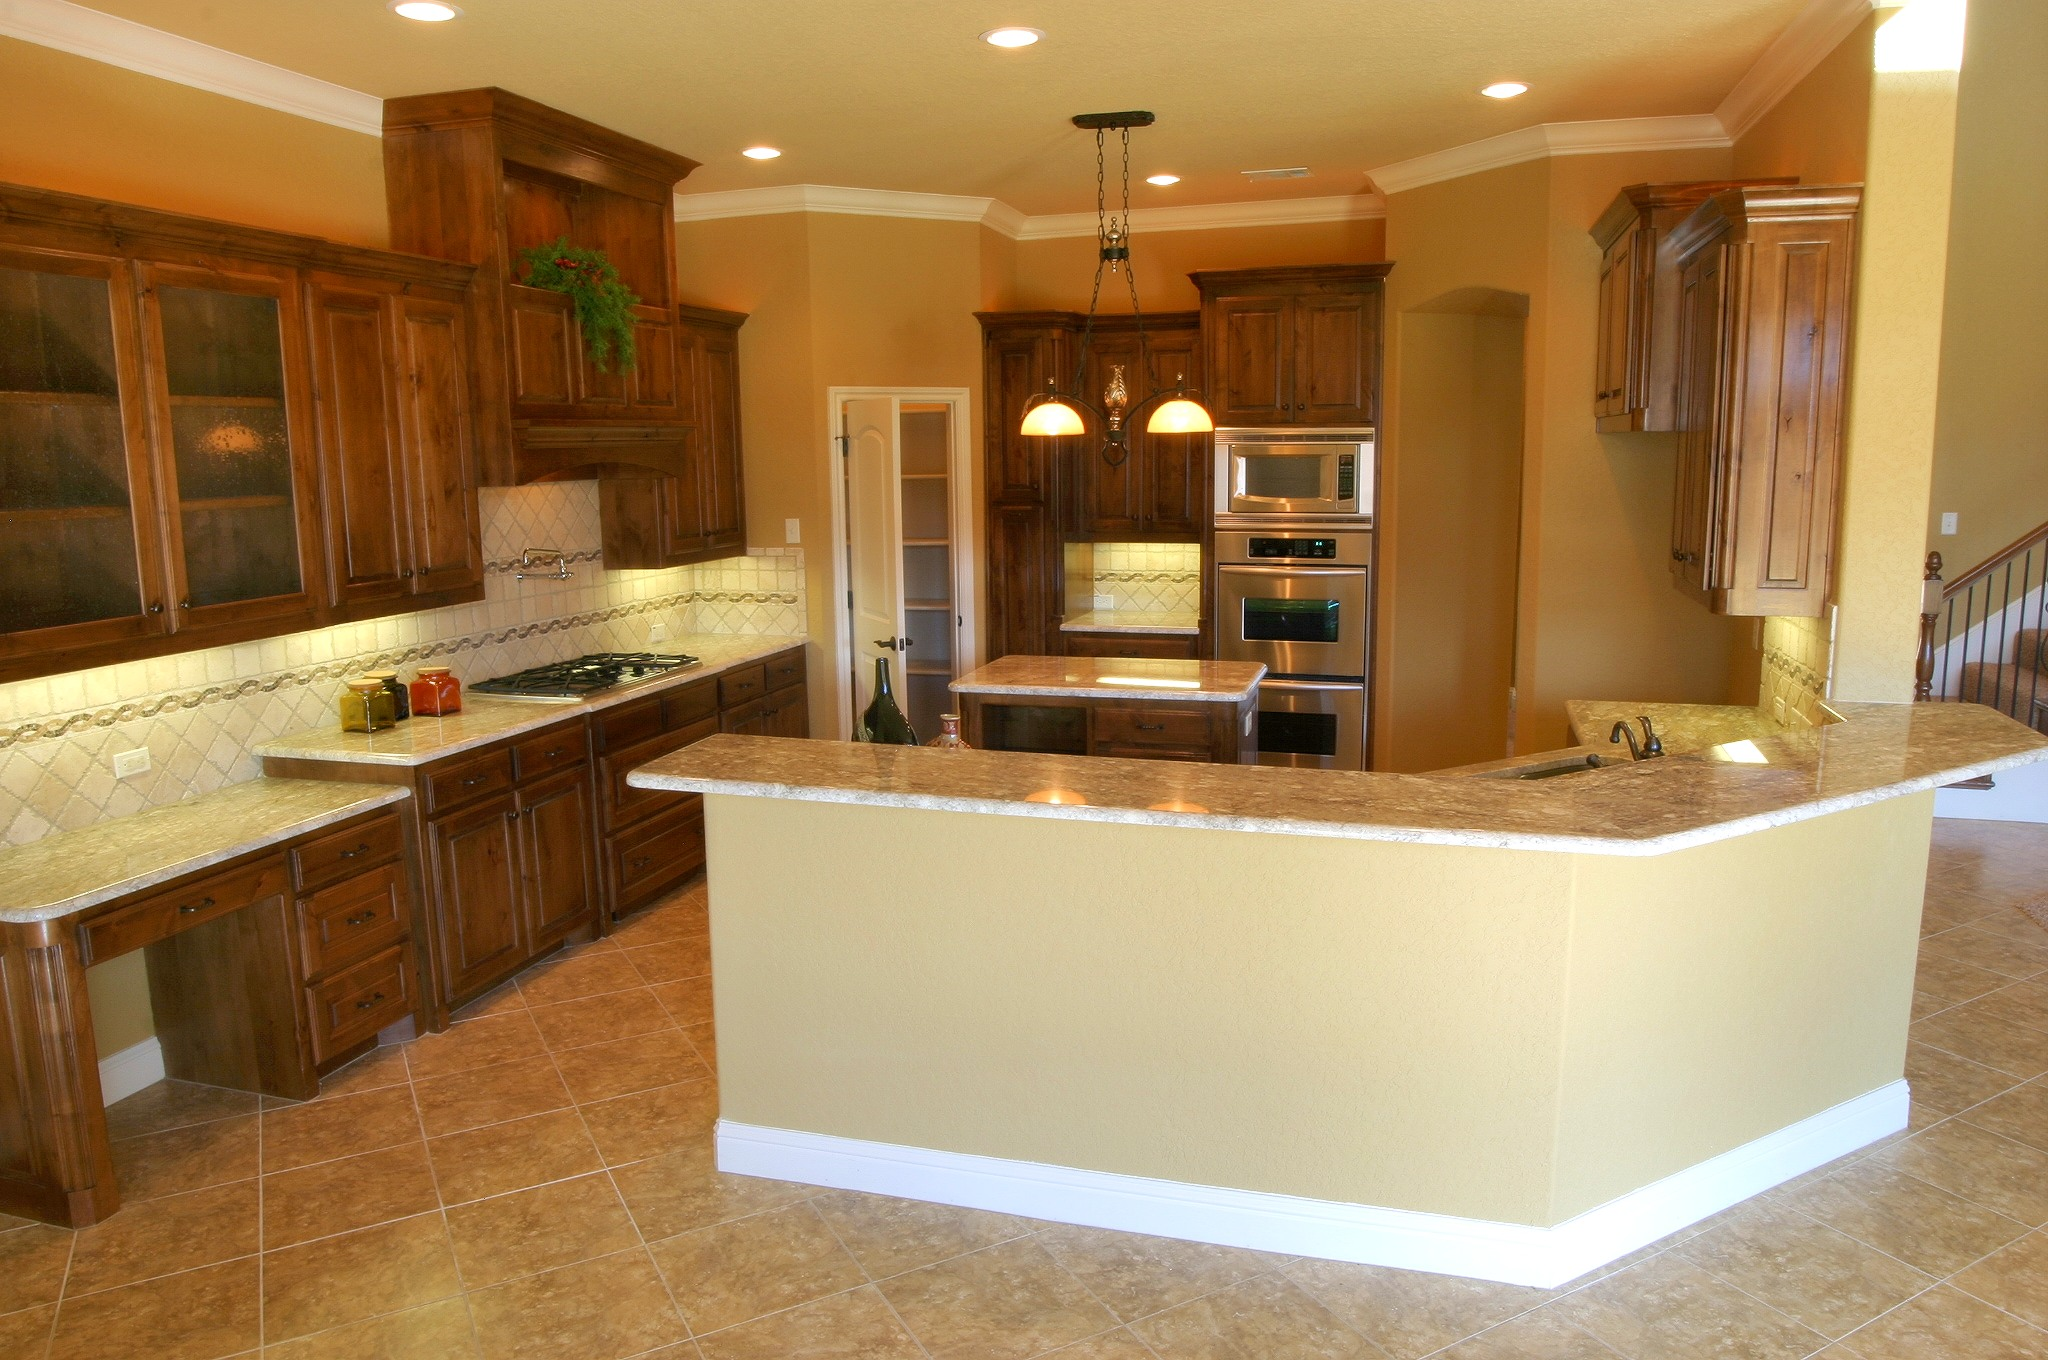 Kitchen island with drawers photo - 3